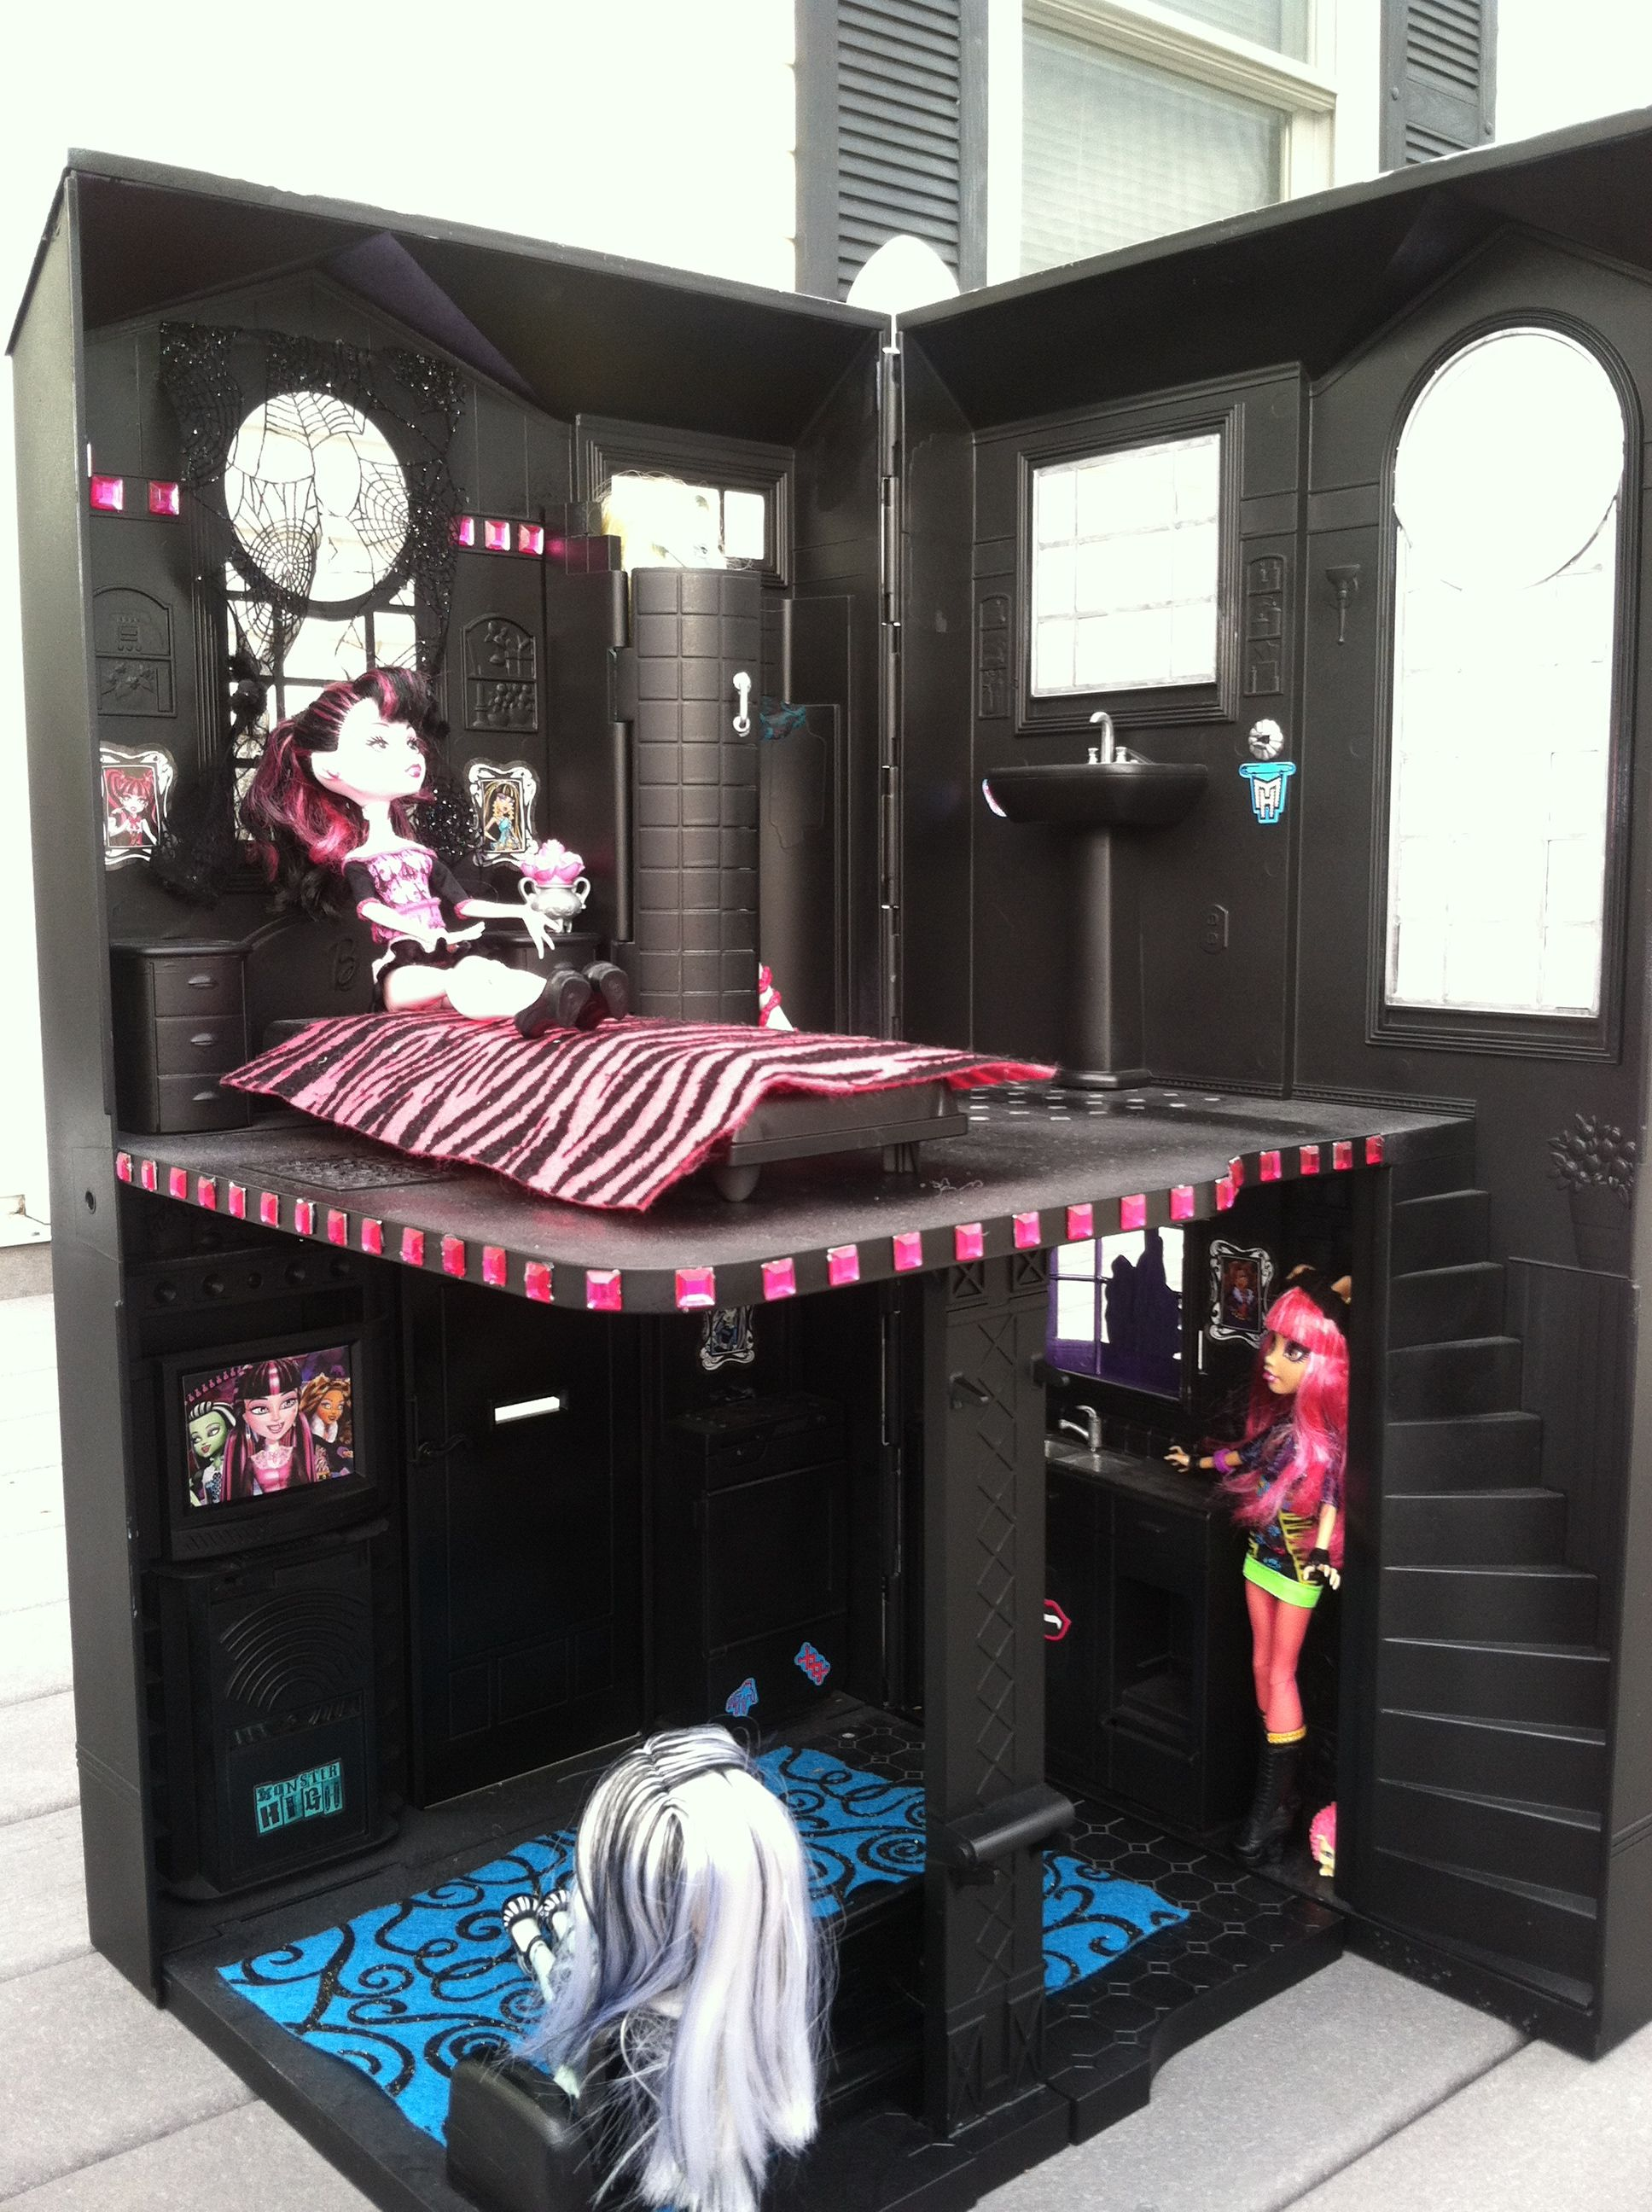 Inside my daughters monster high house my creations my creations pinterest monster high - Casa de monster high ...